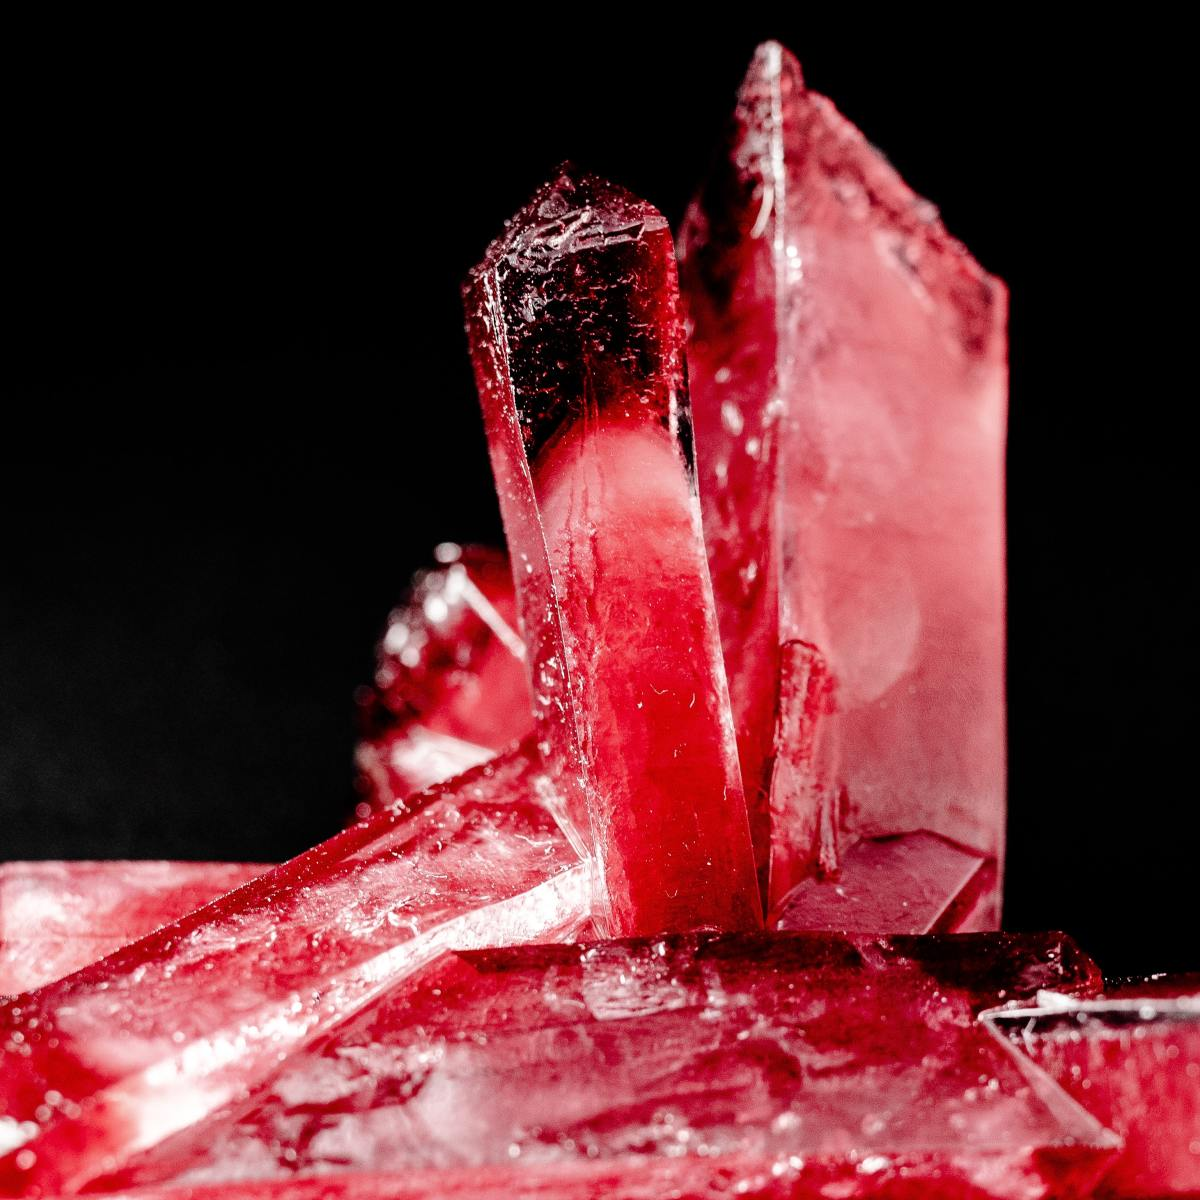 A sample of cracked red quartz.